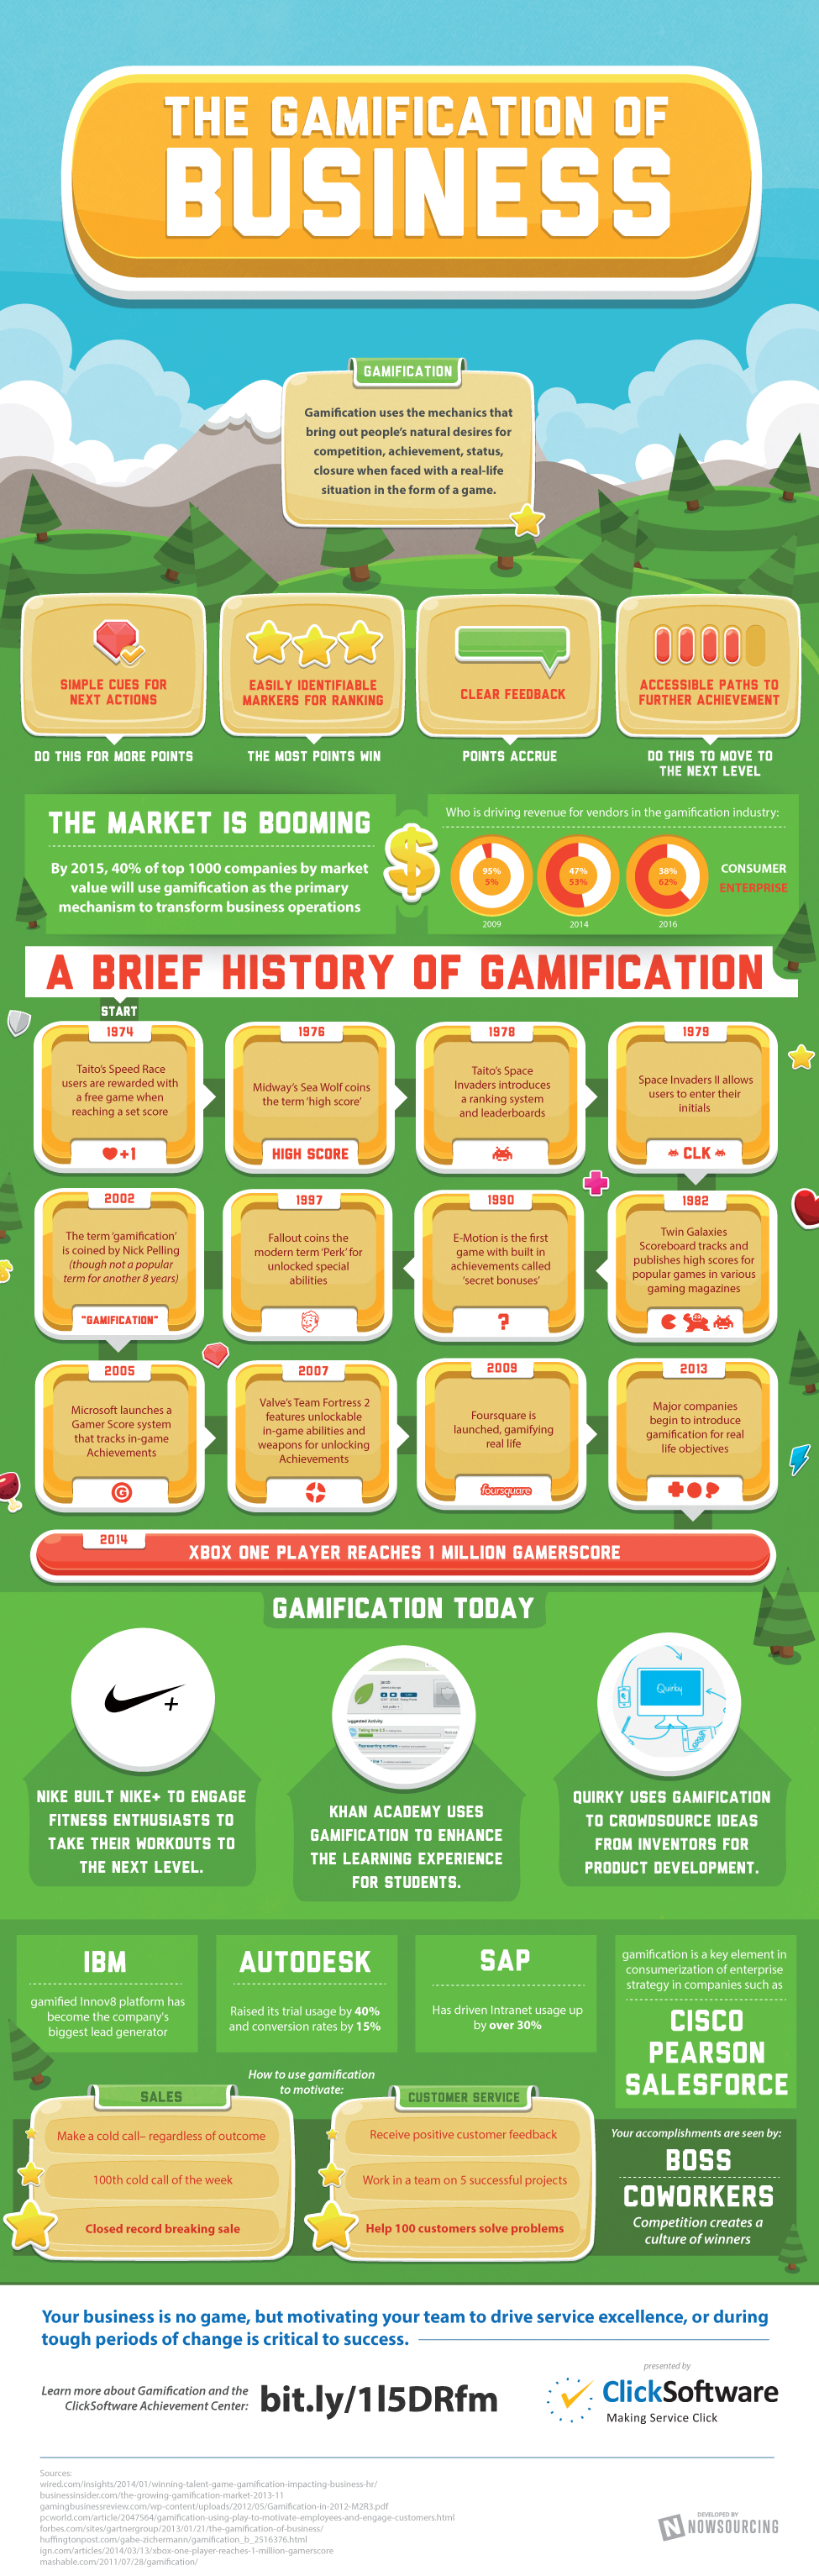 business-gamification